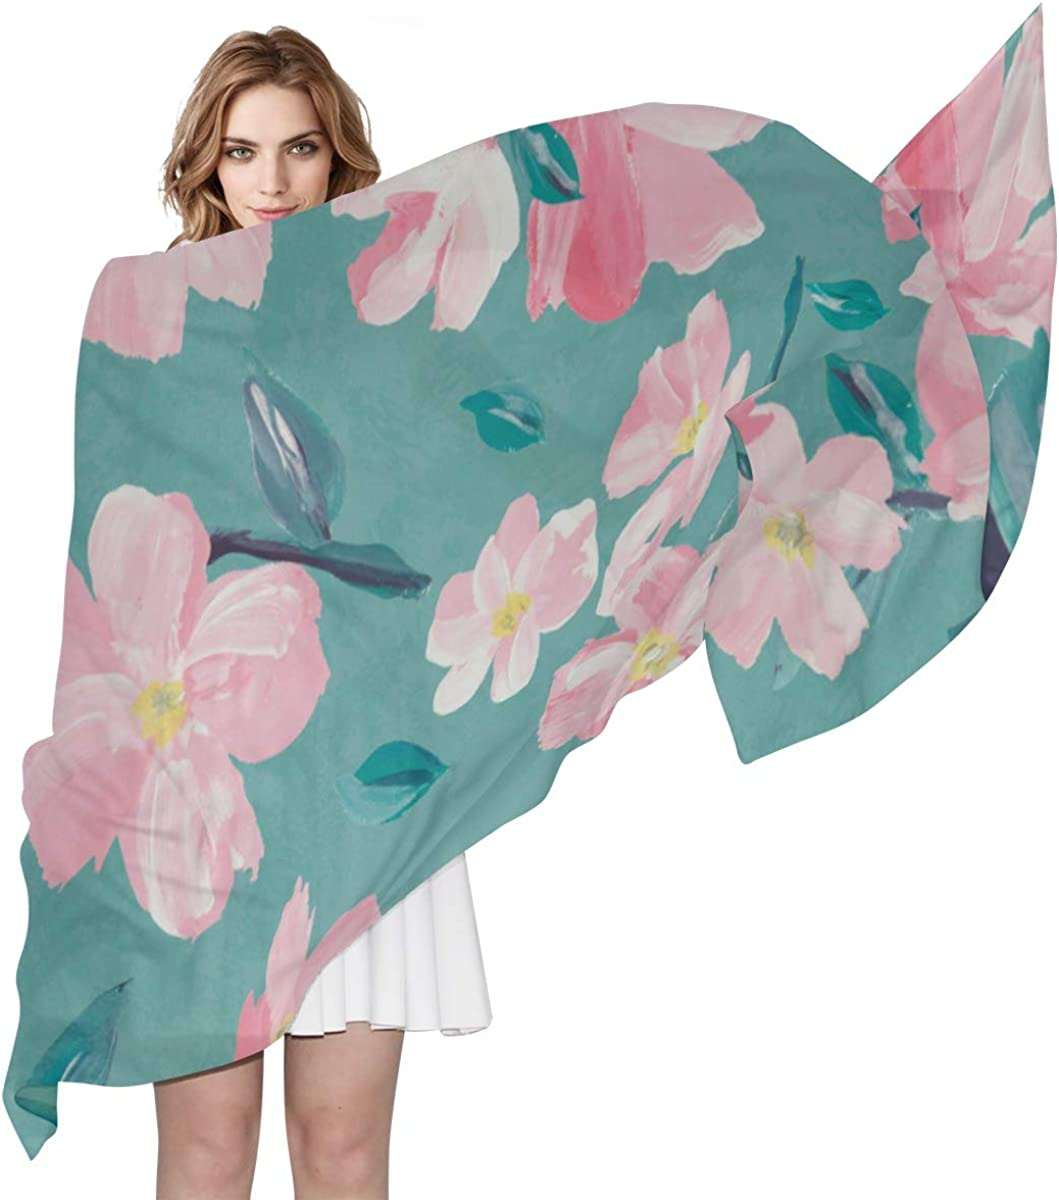 Beautiful Pink Cherry Blossoms Unique Fashion Scarf For Women Lightweight Fashion Fall Winter Print Scarves Shawl Wraps Gifts For Early Spring